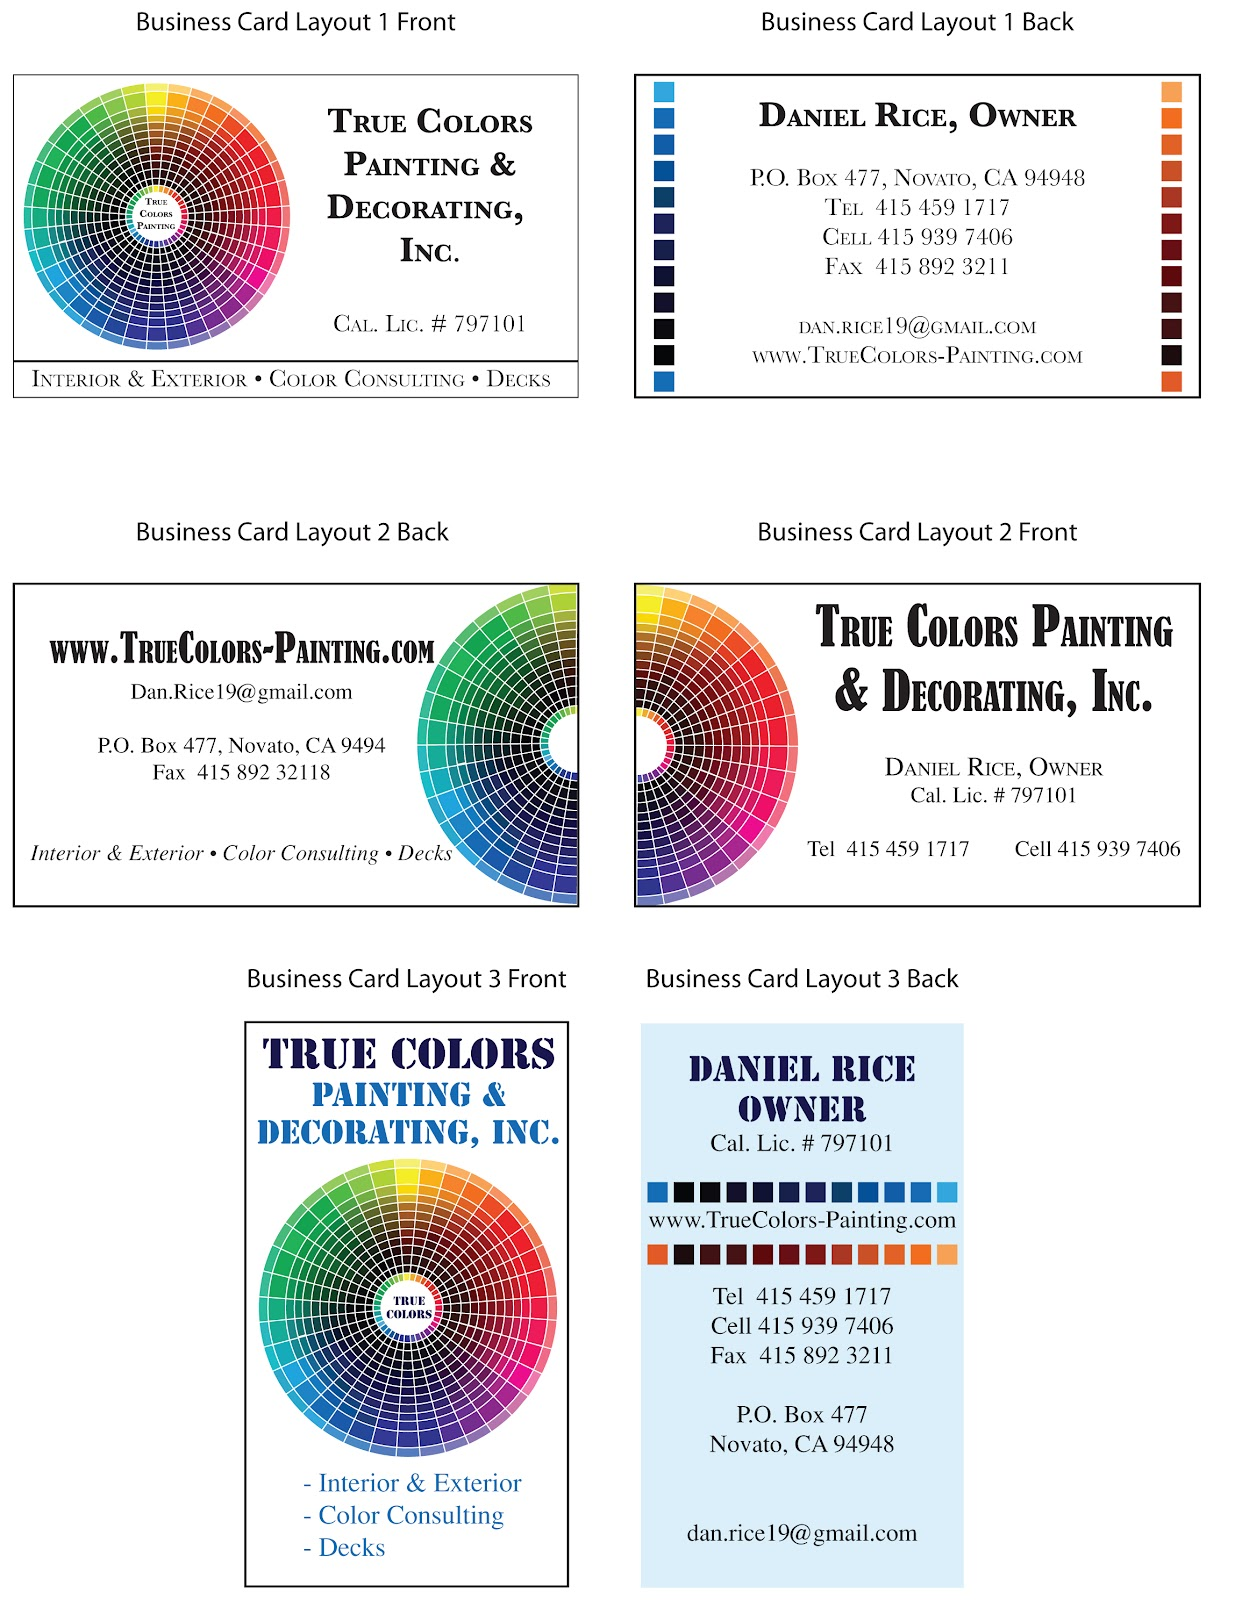 Susan searway art design creating a logo true colors - Color wheel for decorating ...